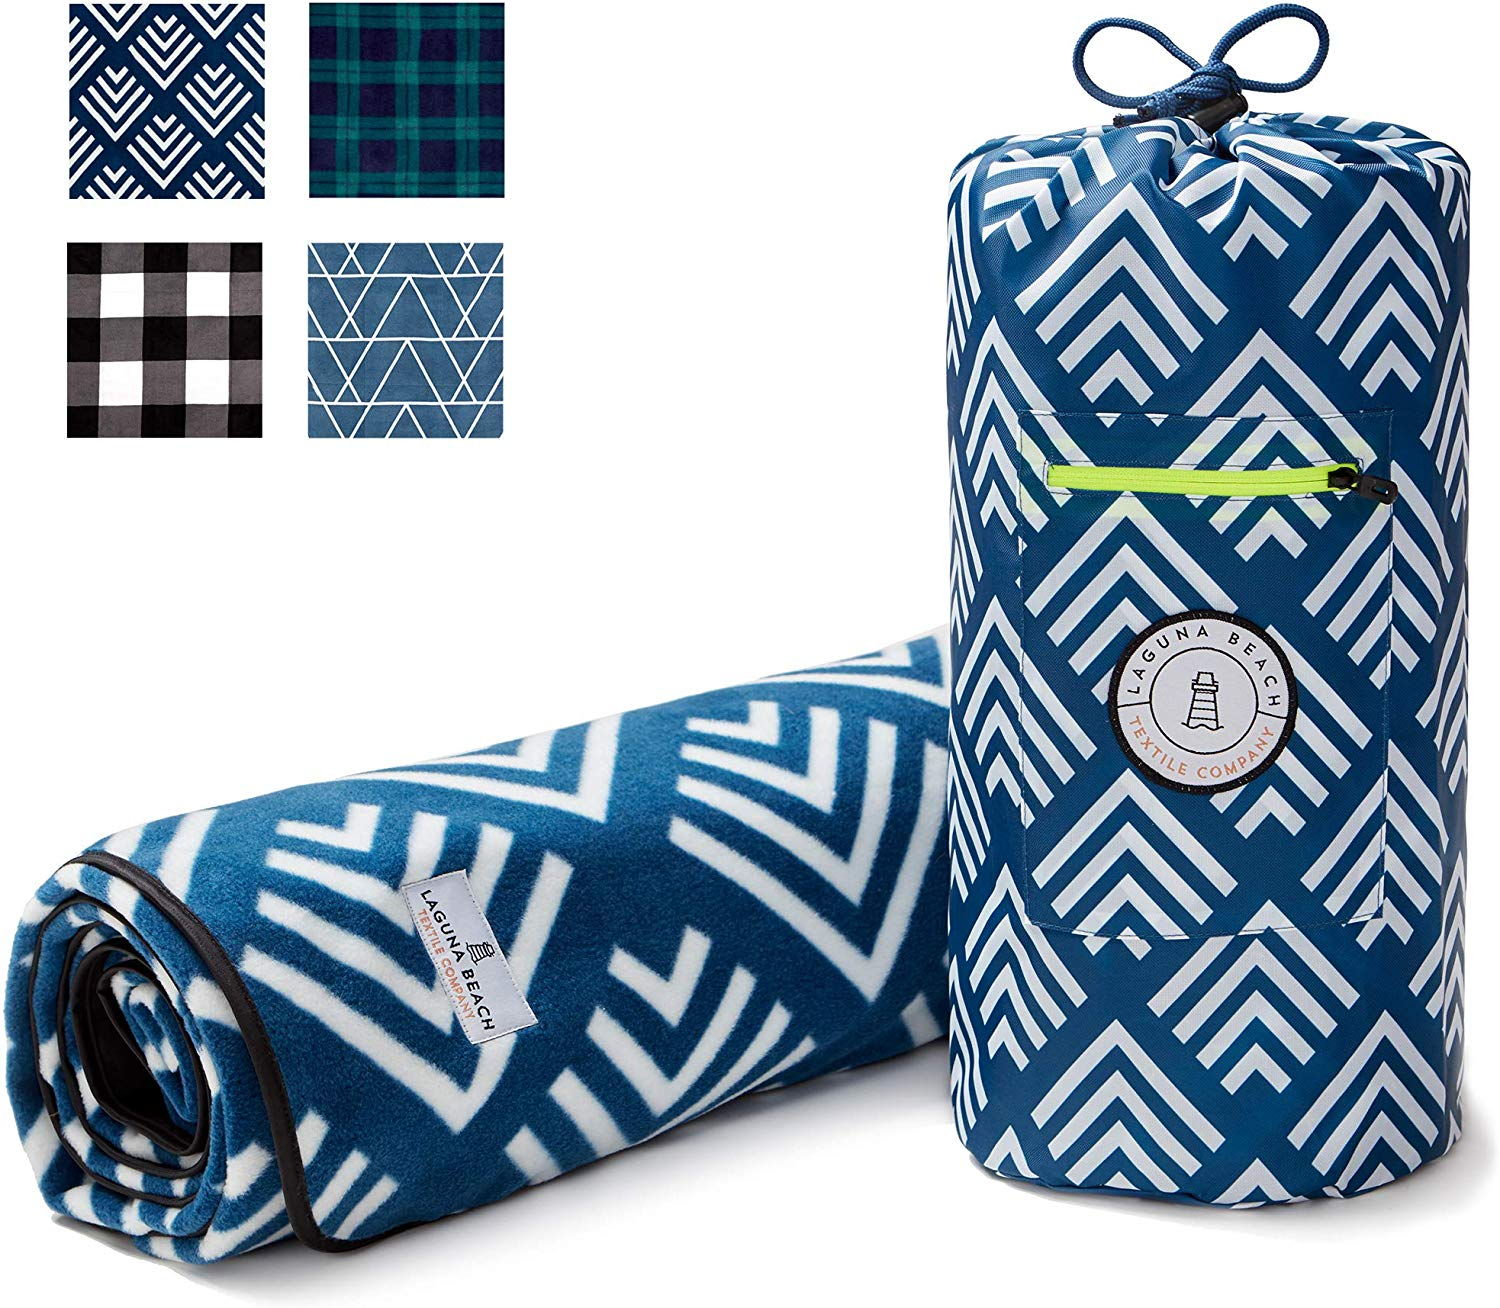 Picnic & Outdoor Blanket by Laguna Beach Textile Company